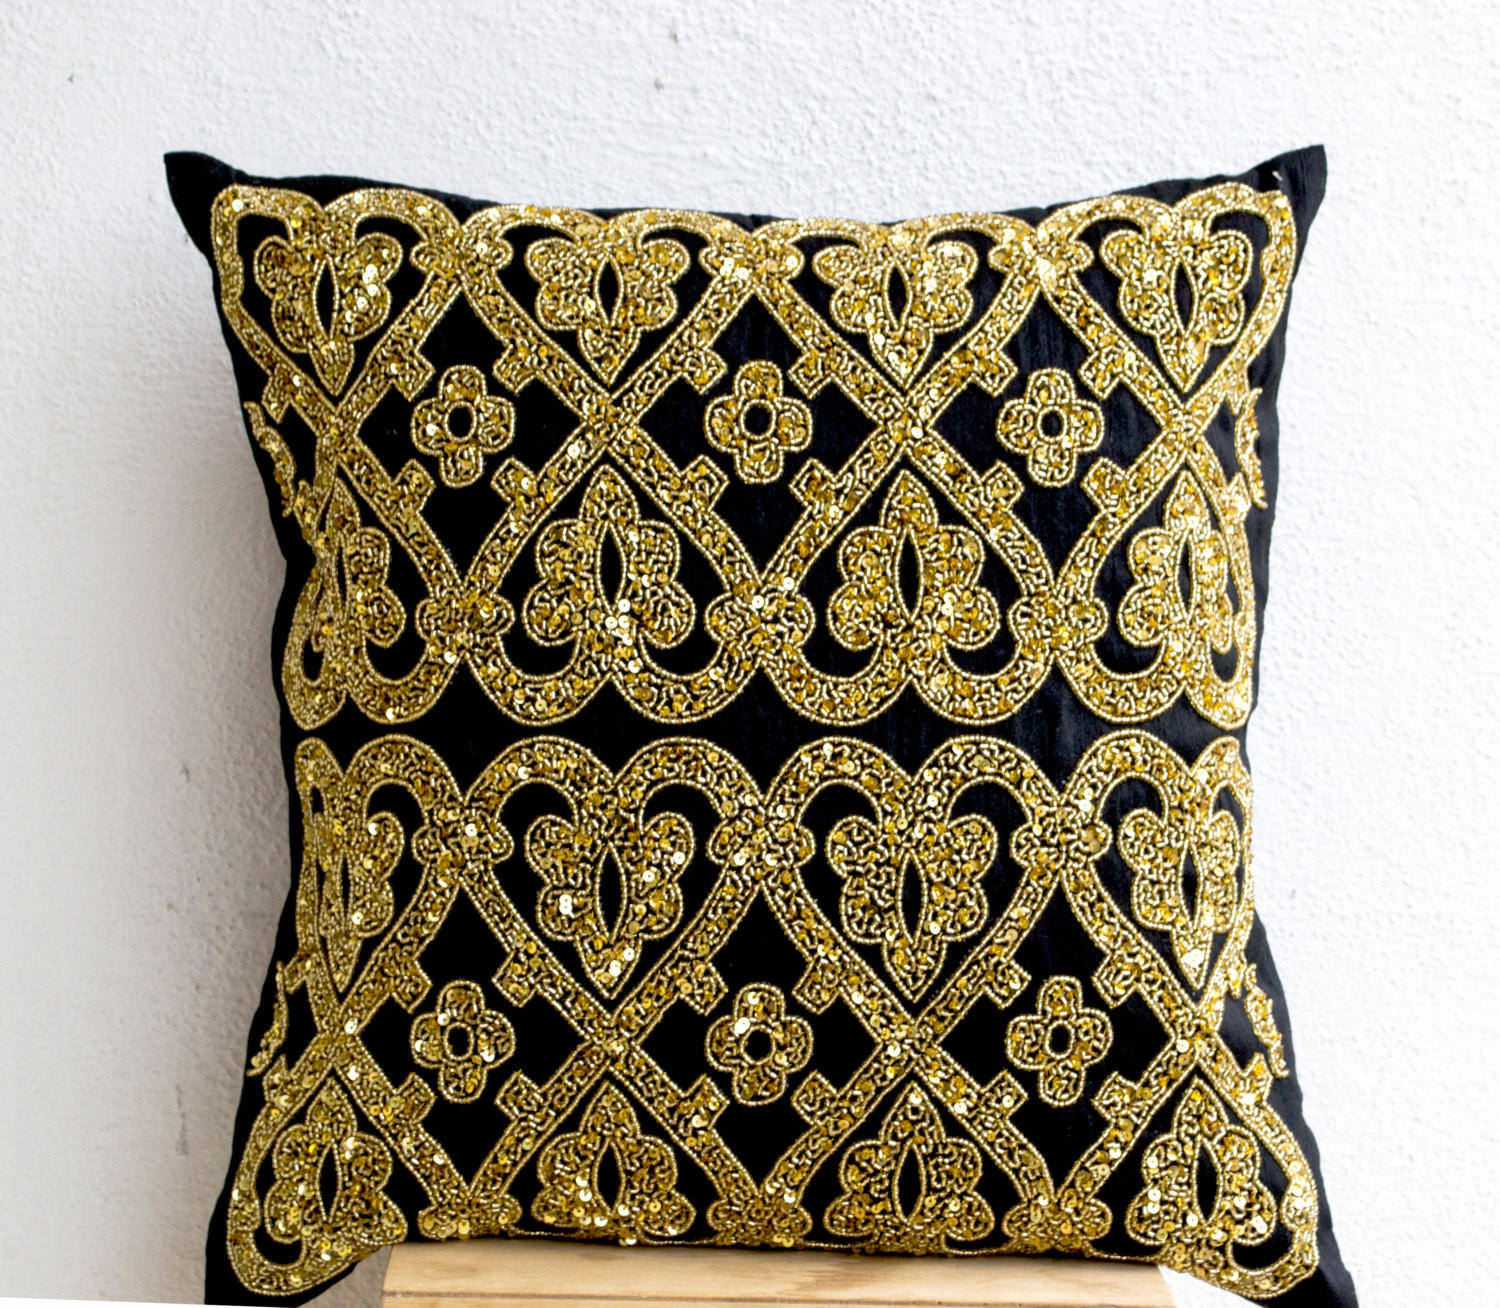 Decorative Throw Pillow Black Silk Gold from casaamore